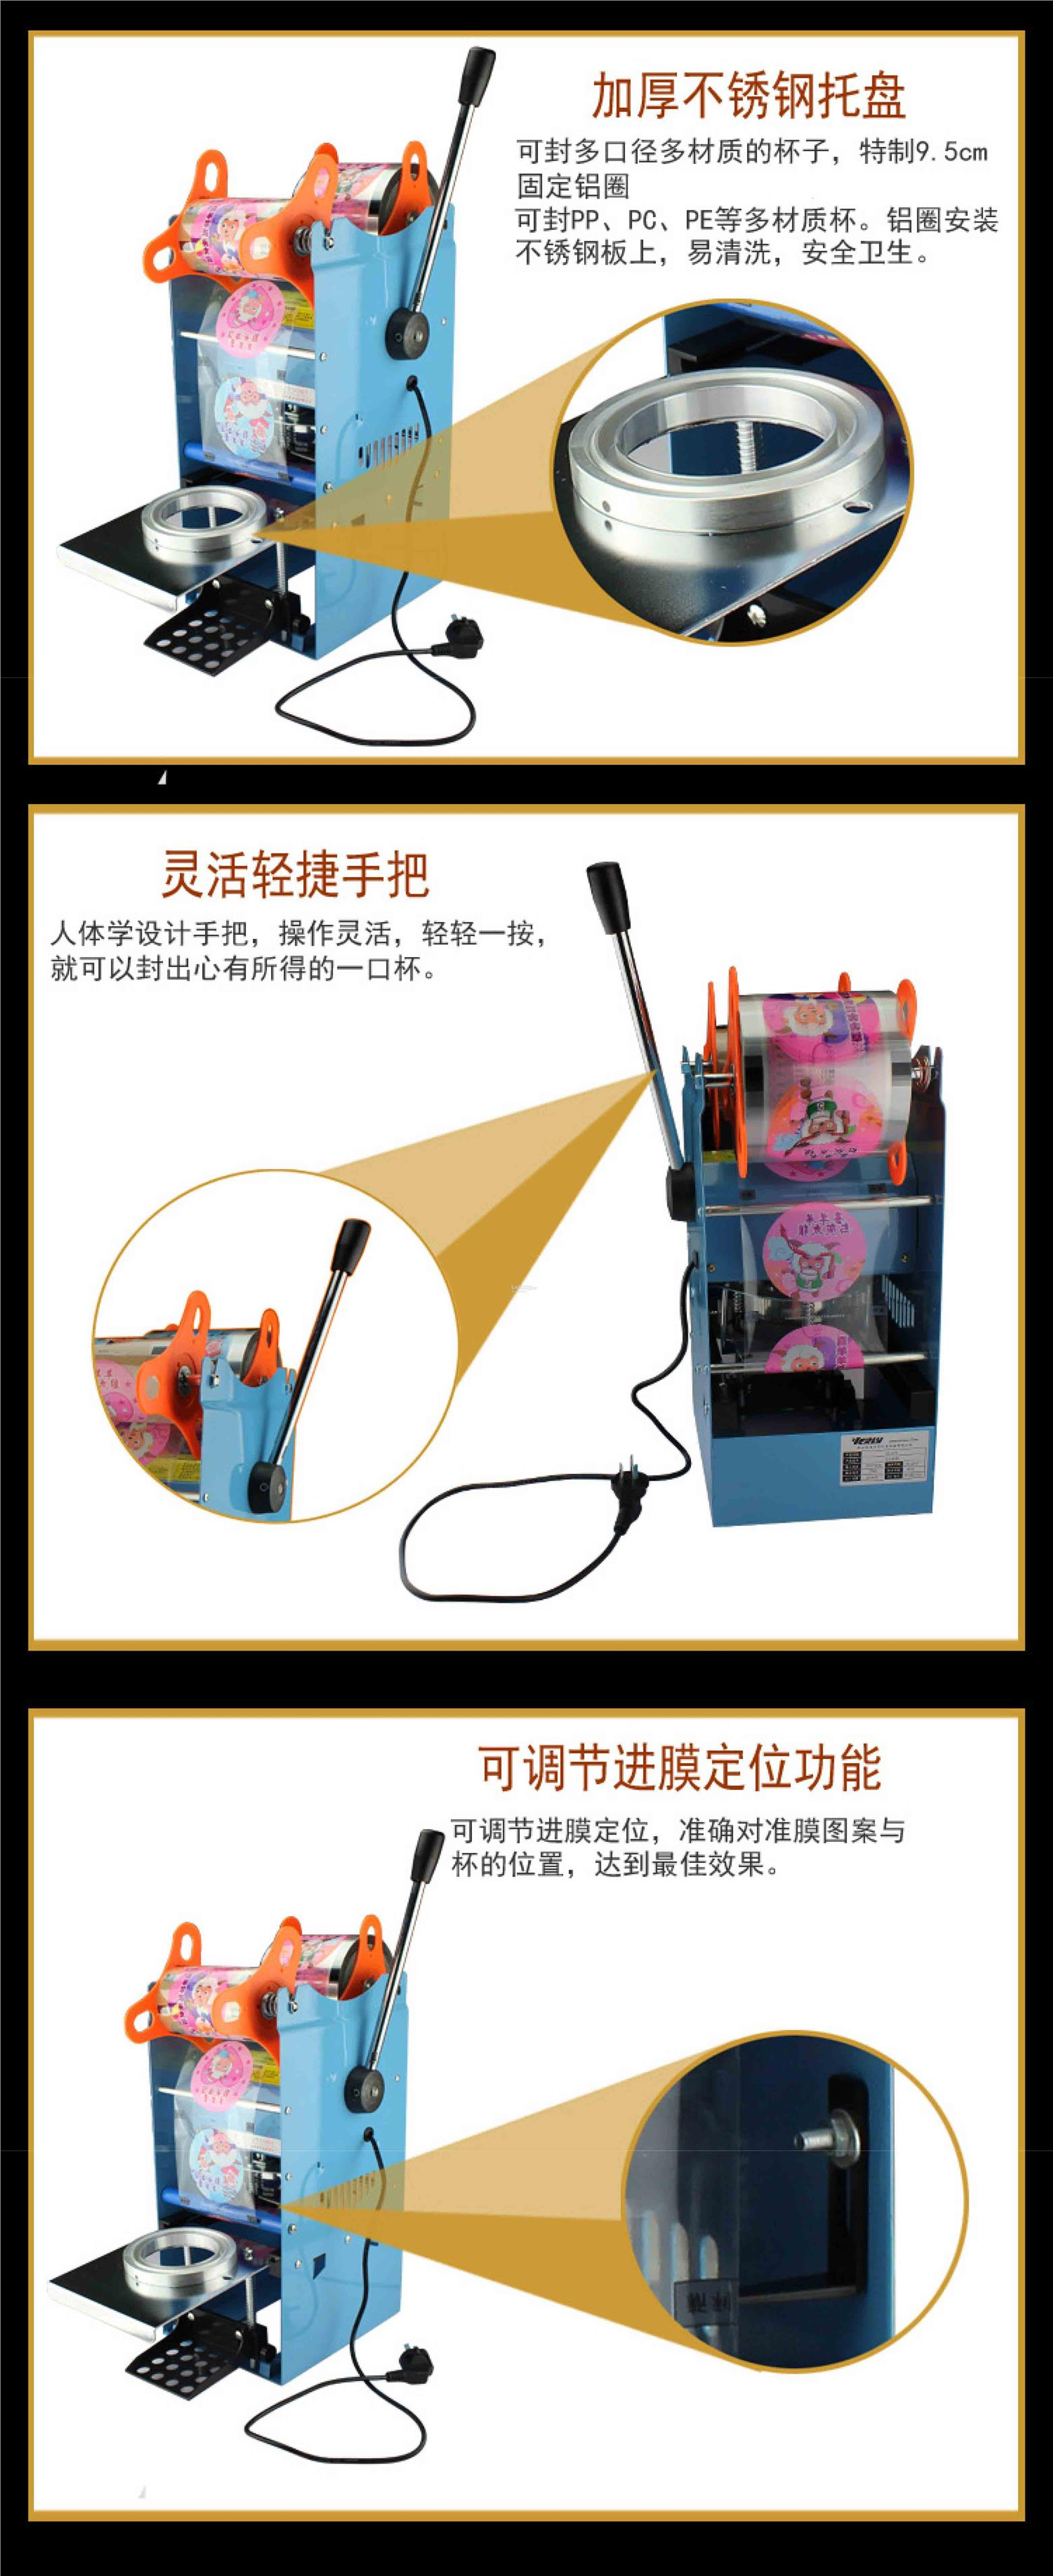 Where To Buy Cup Sealer Machine